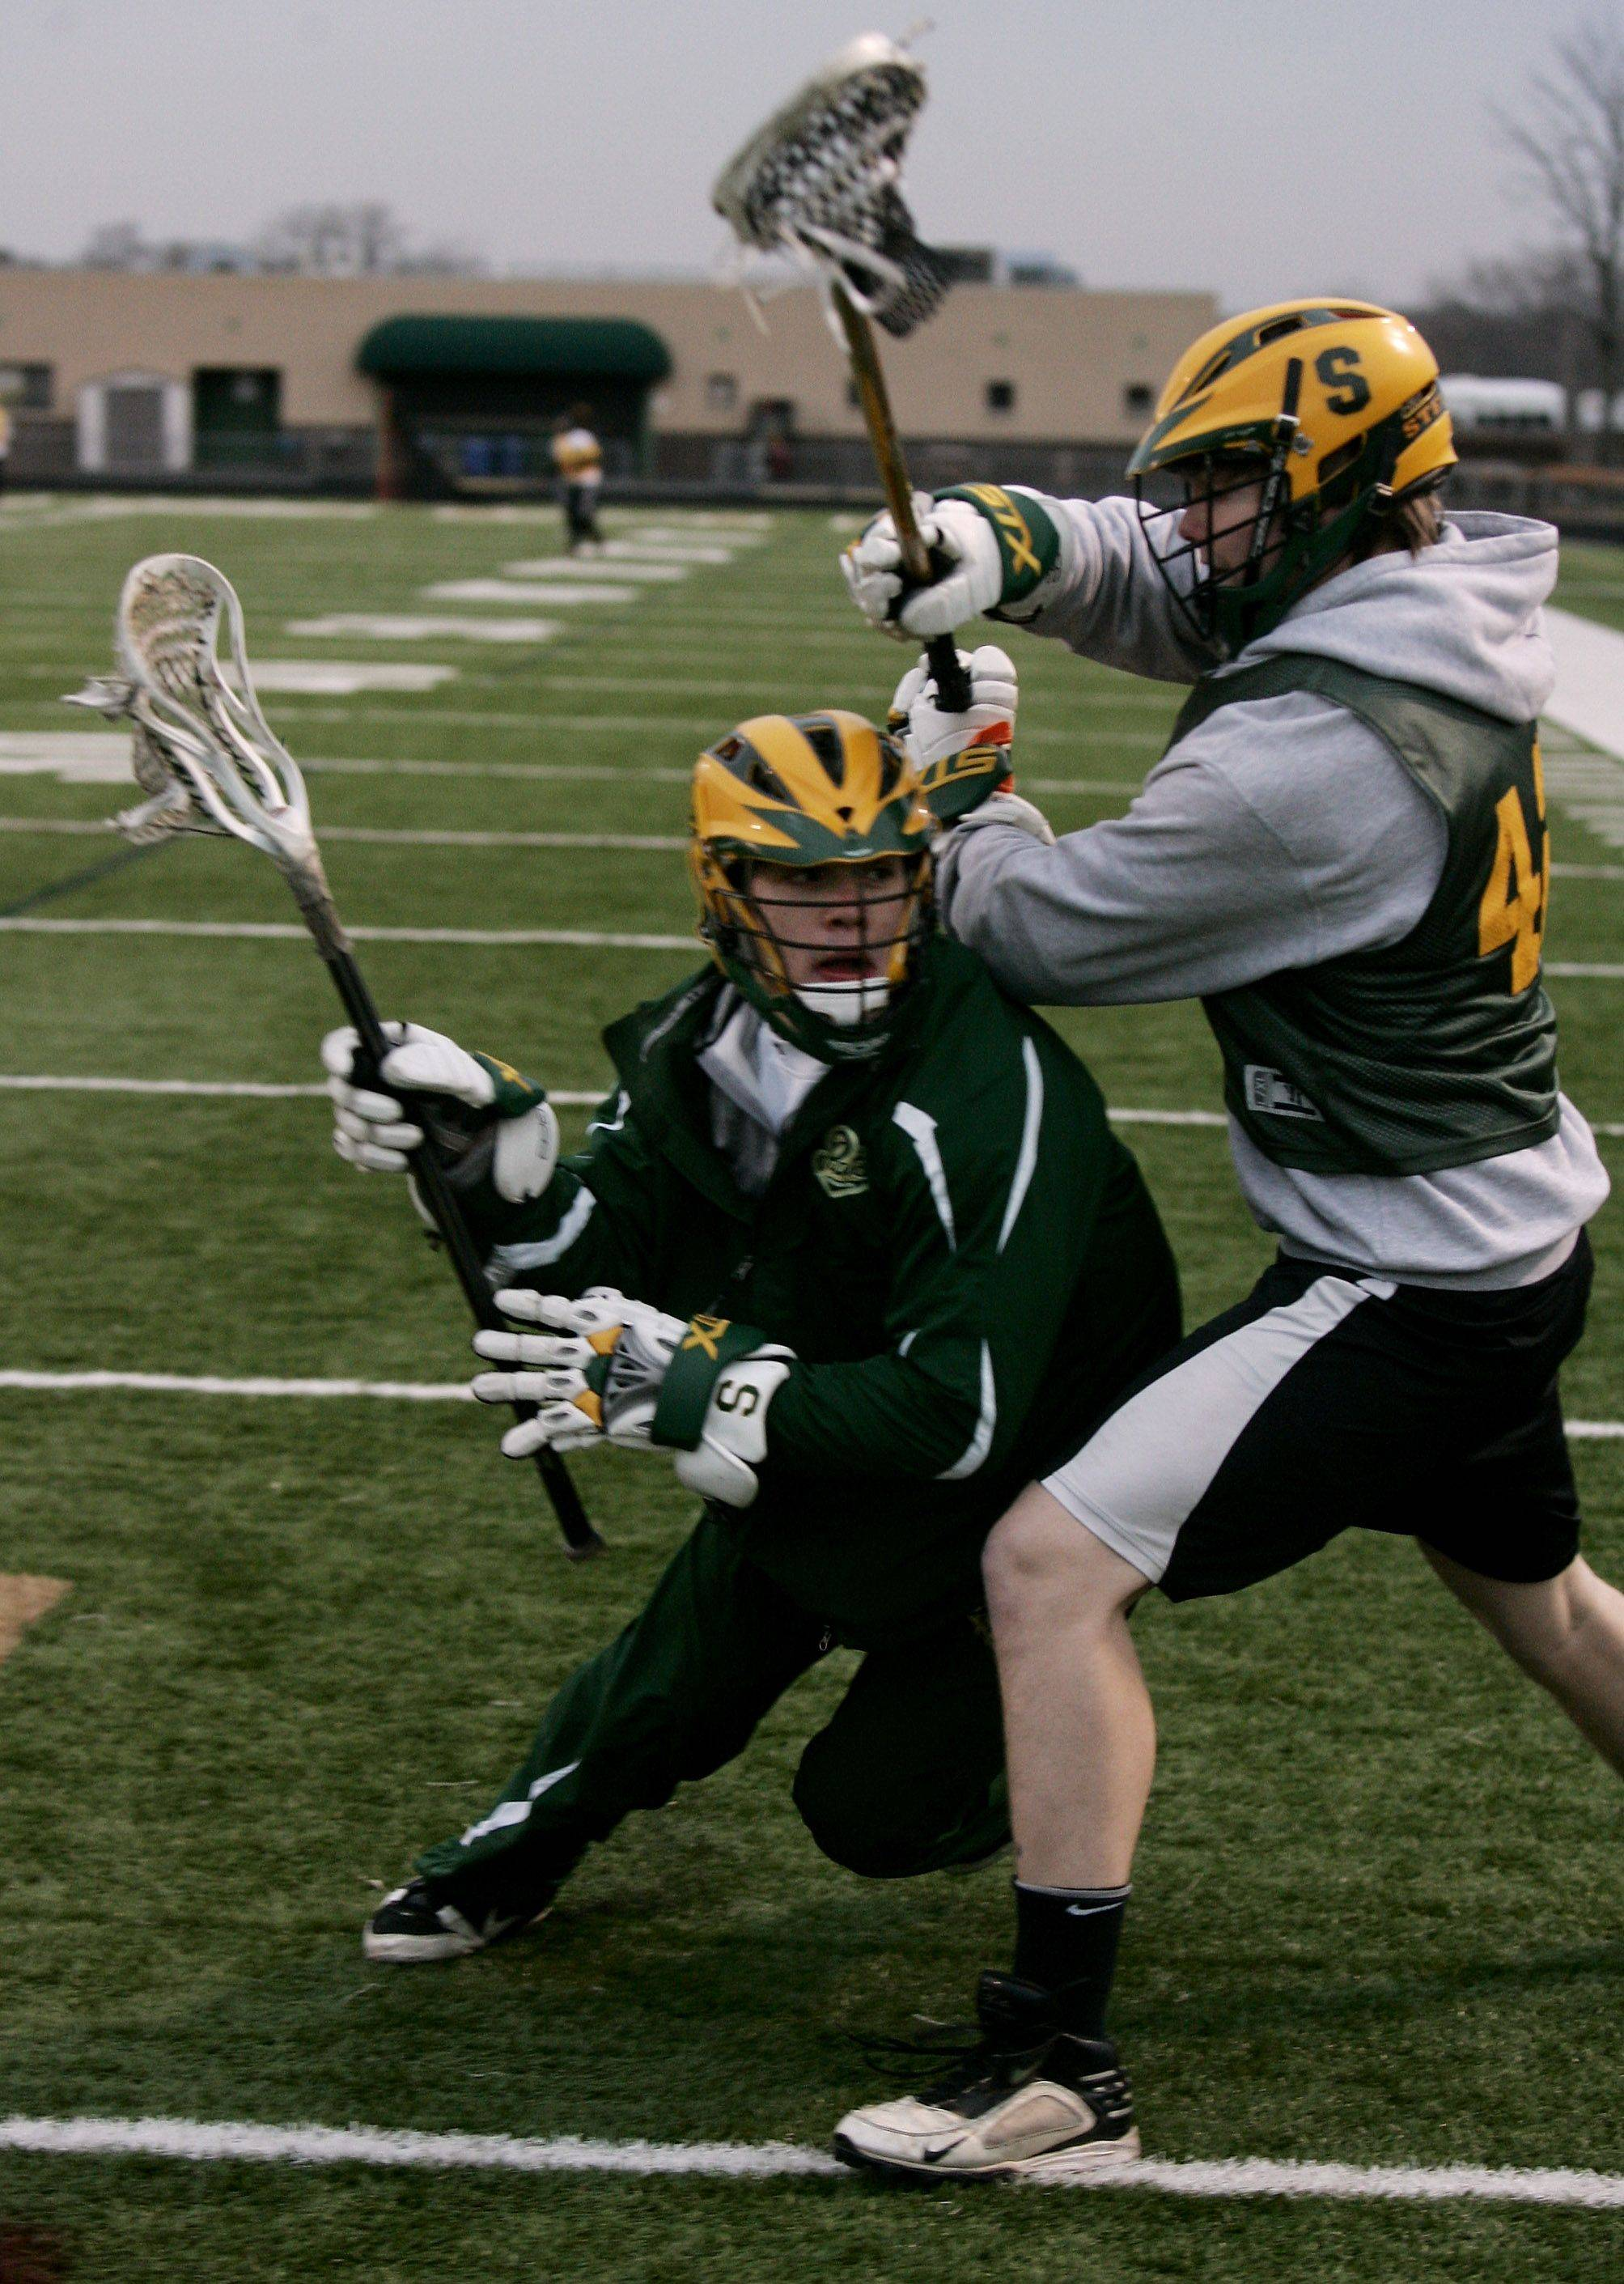 Midfielder Ryan Spitzer, left moves around defender Eric Brasier during the boys lacrosse team practice at Stevenson High School in Lincolnshire.